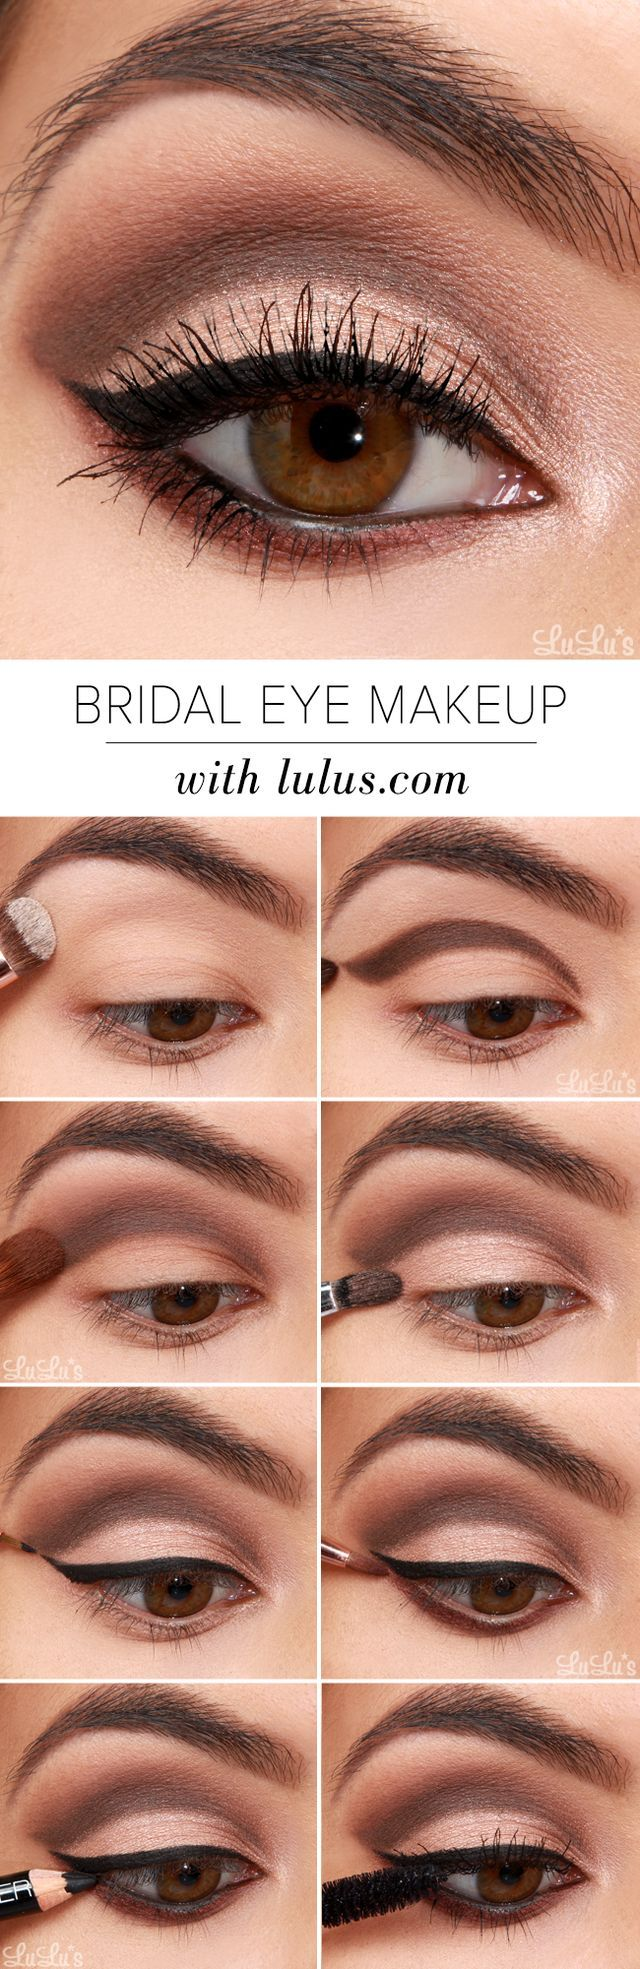 Whether you're a bride-to-be, or simply a lover of glamorous makeup looks, our...